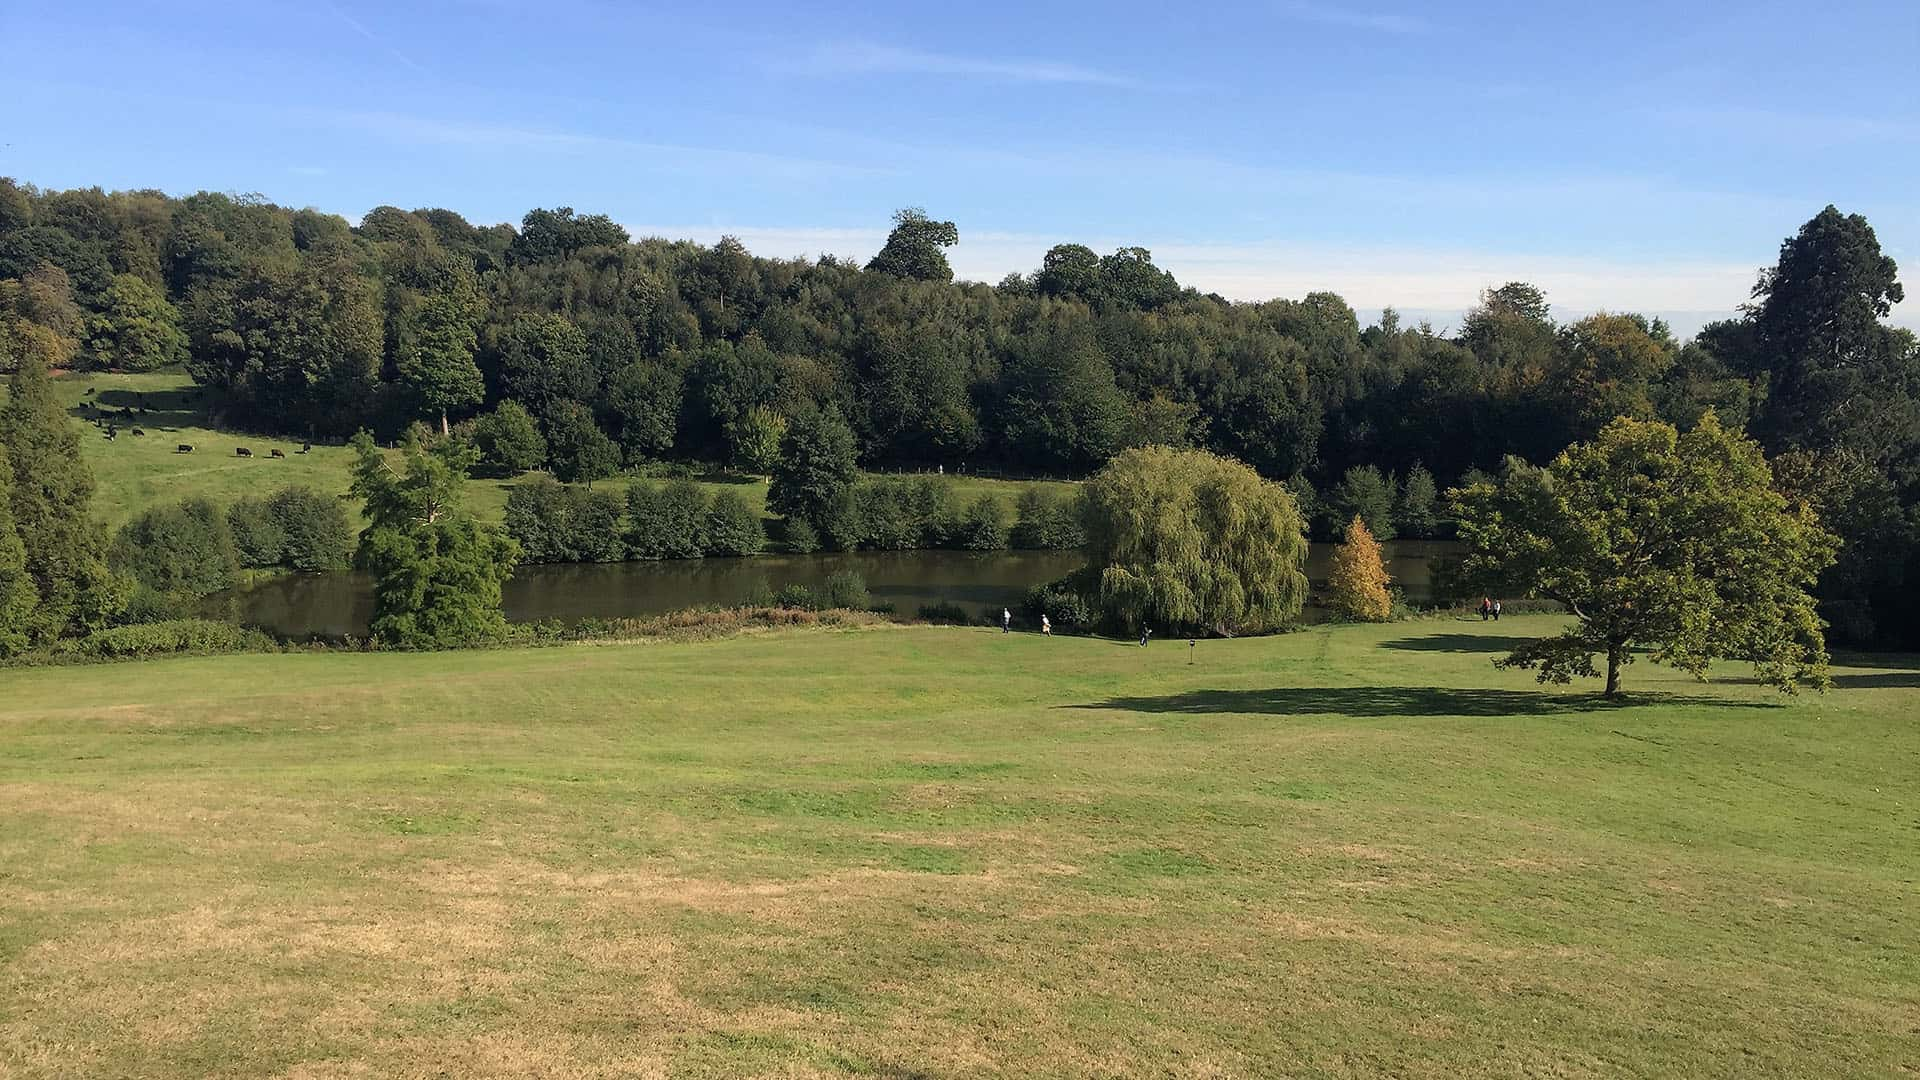 Chartwell gardens and lake